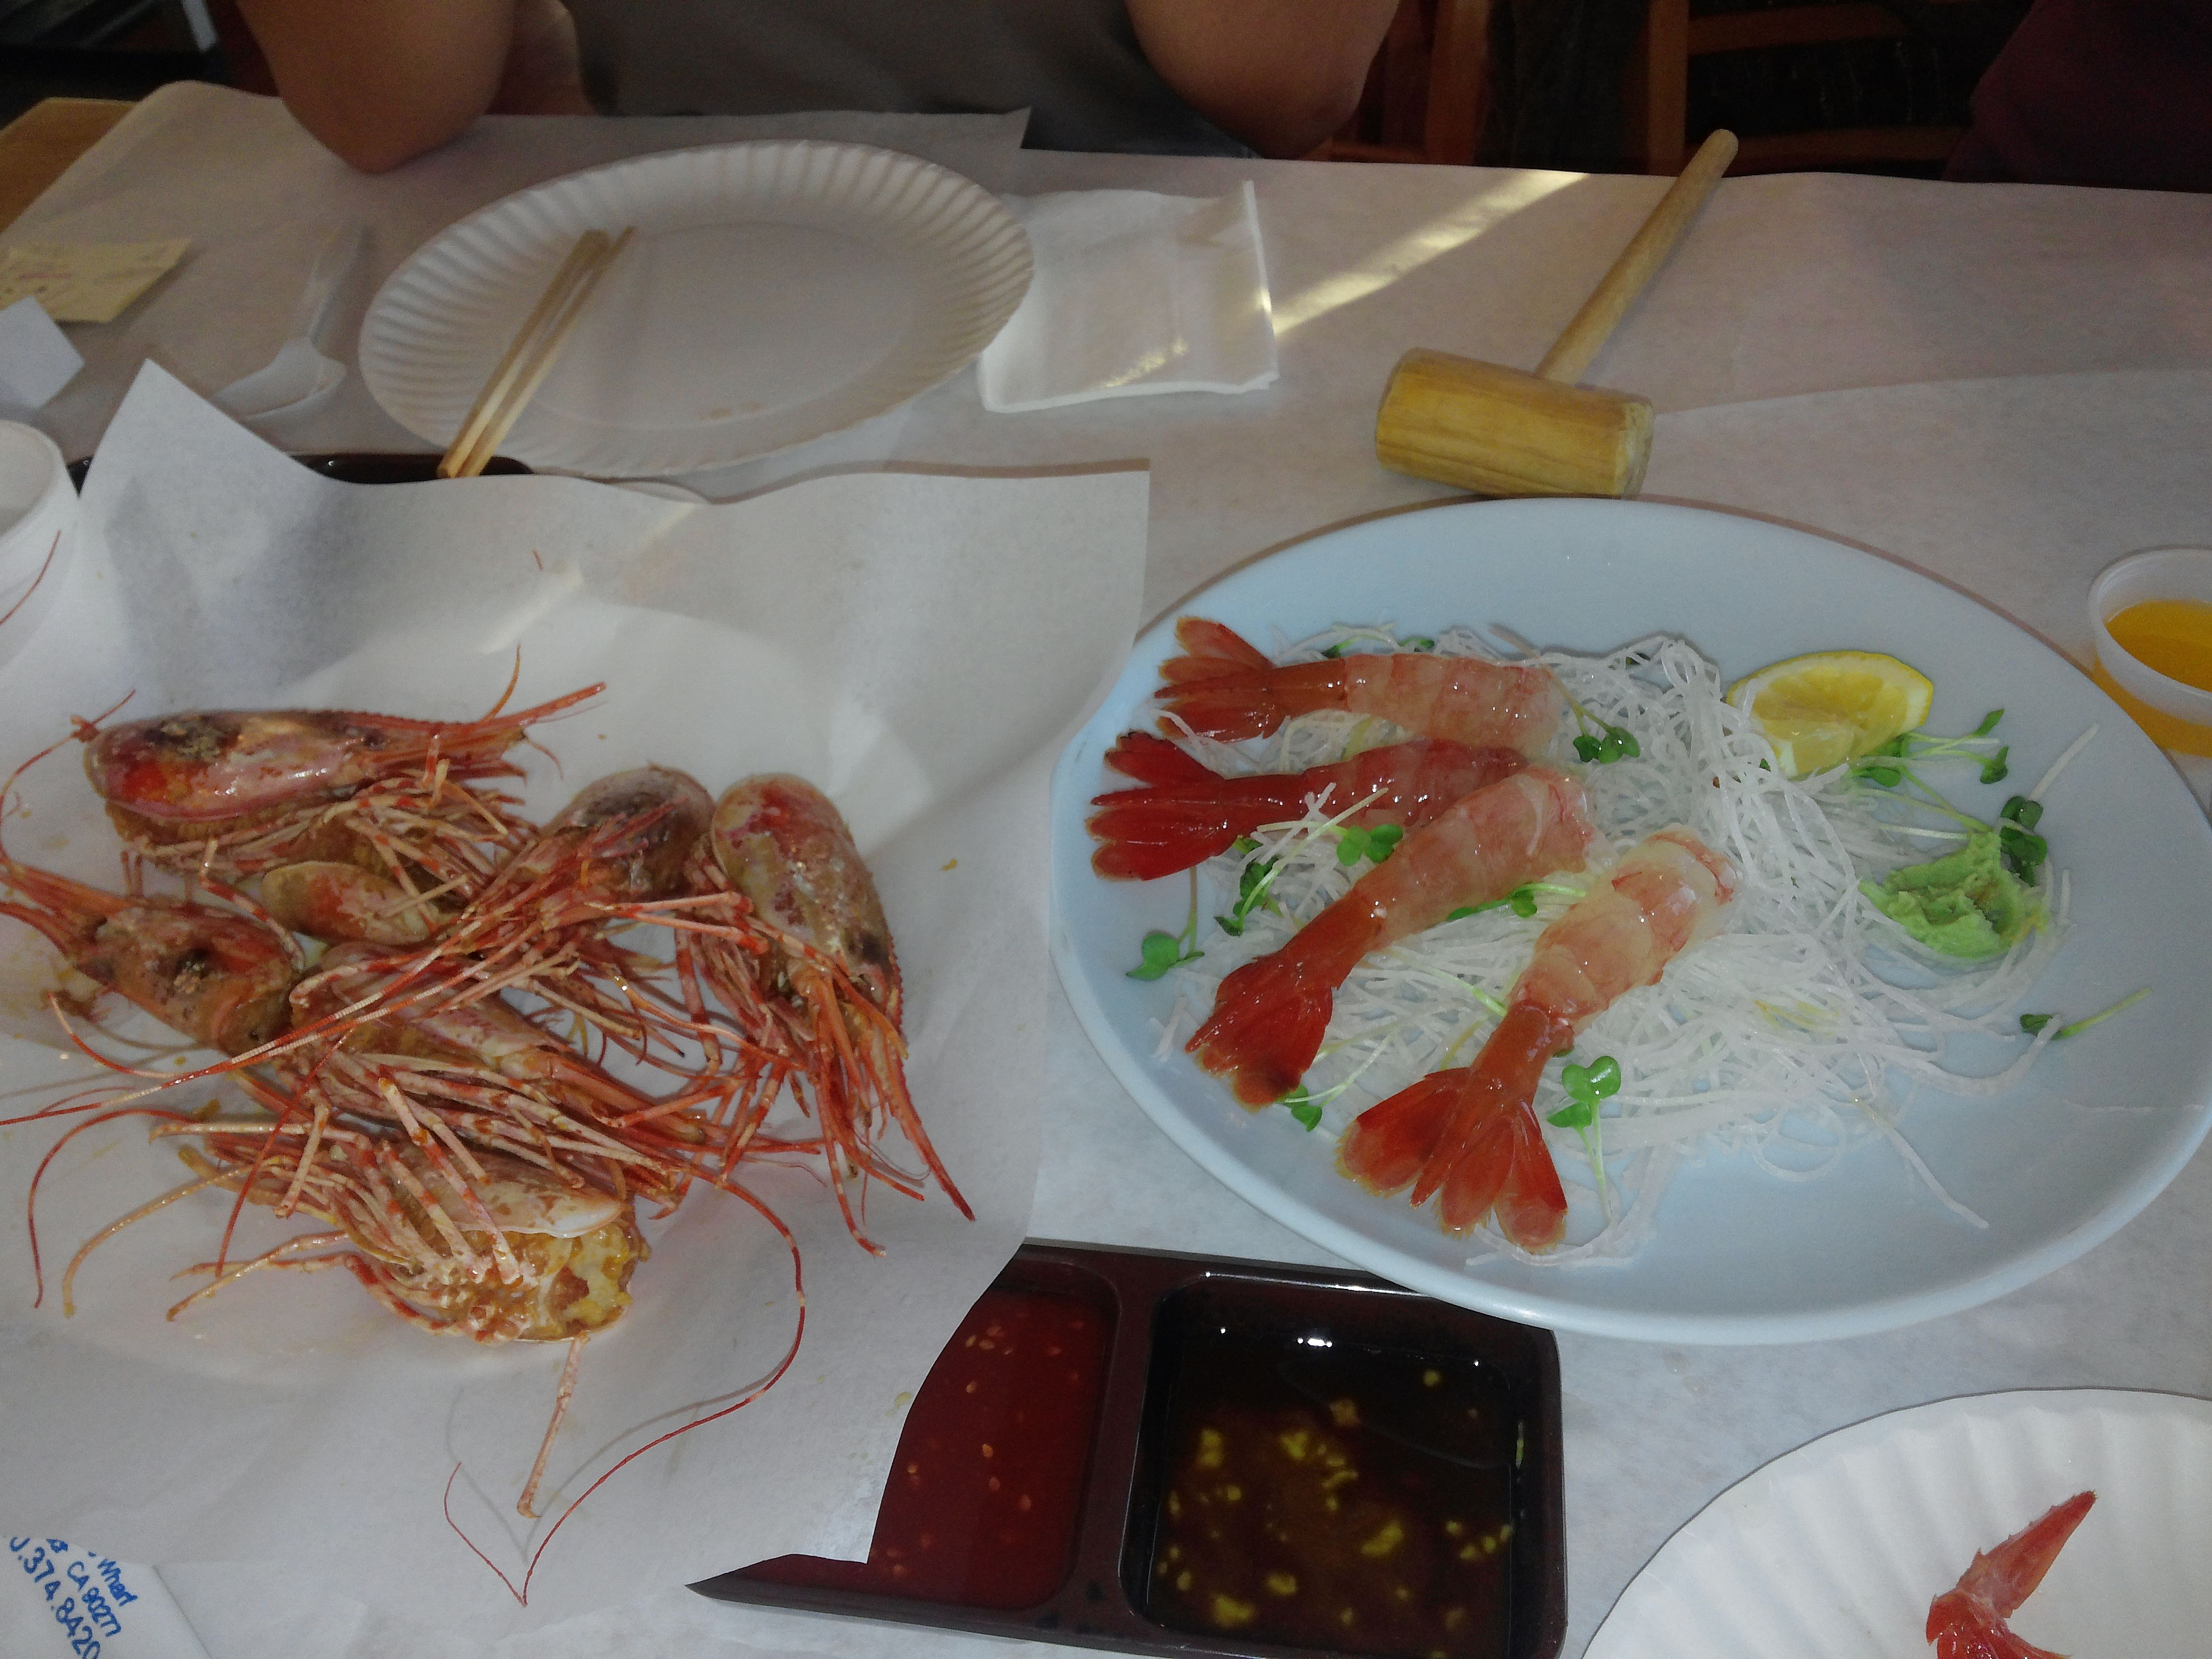 Raw Shrimp Sushi And Fried Shrimp Heads Crabs And 매운탕 At